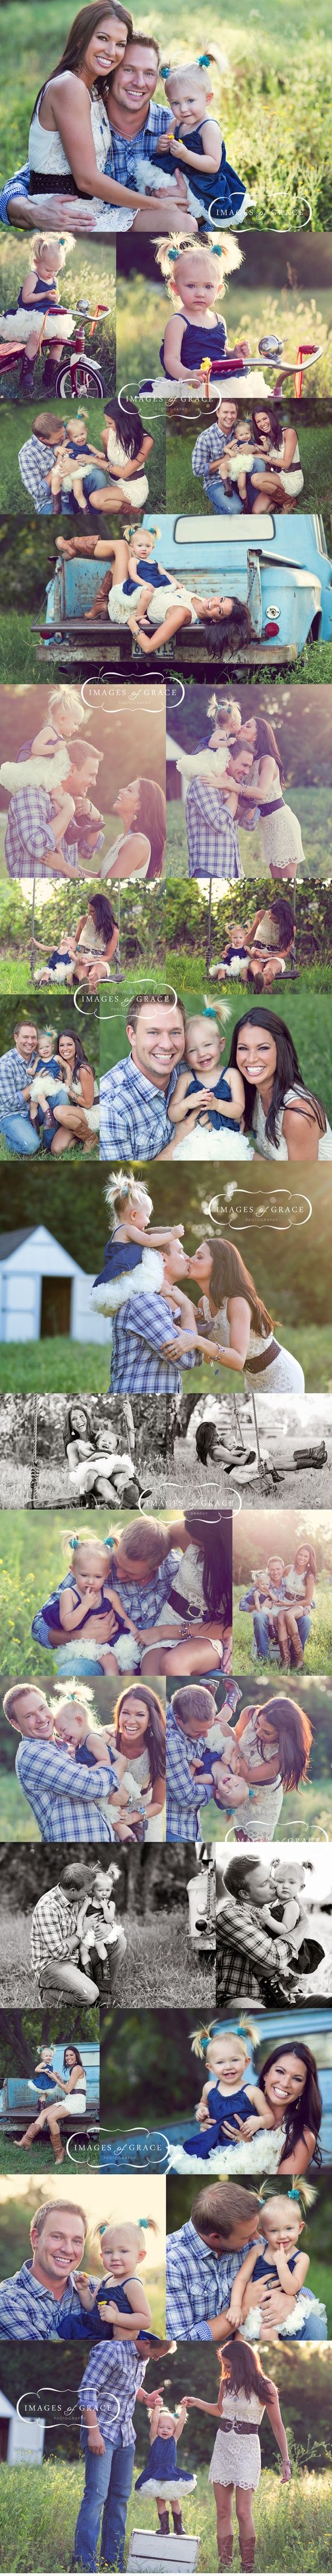 Adorable family photos love melissa rycroft! Honestly can their family gat anymore perfect?